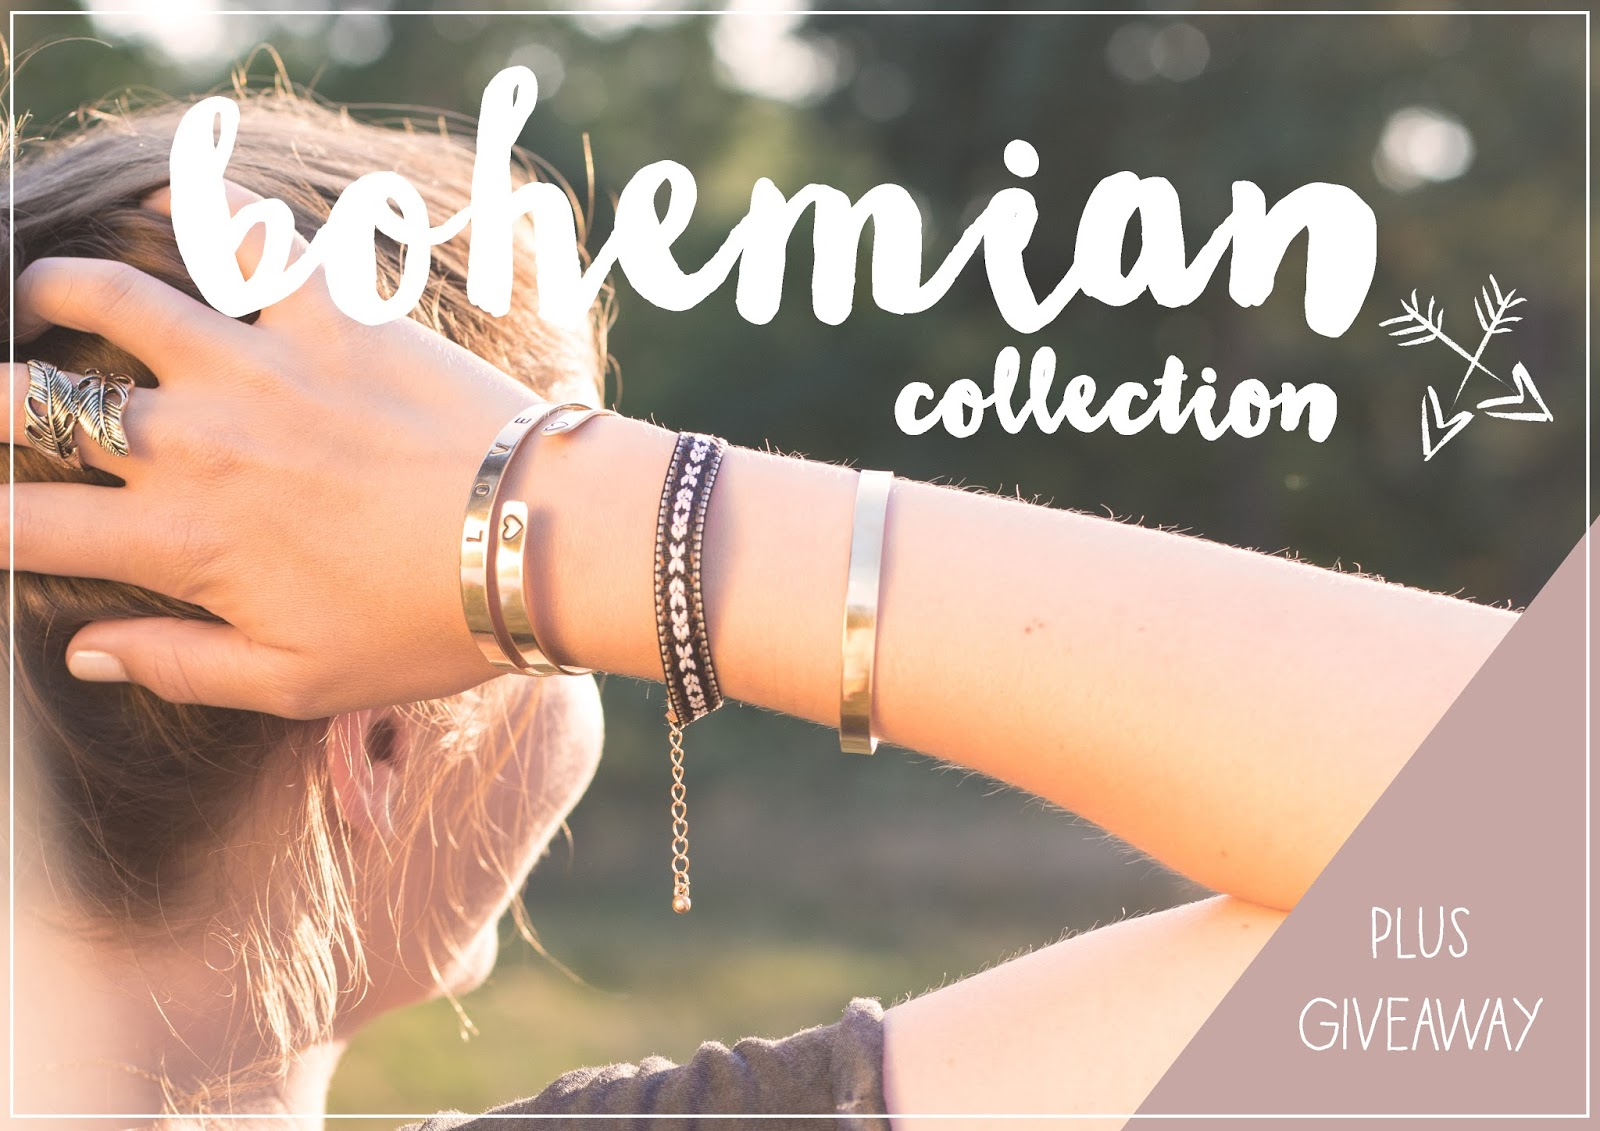 Bohemian Collection Giveaway